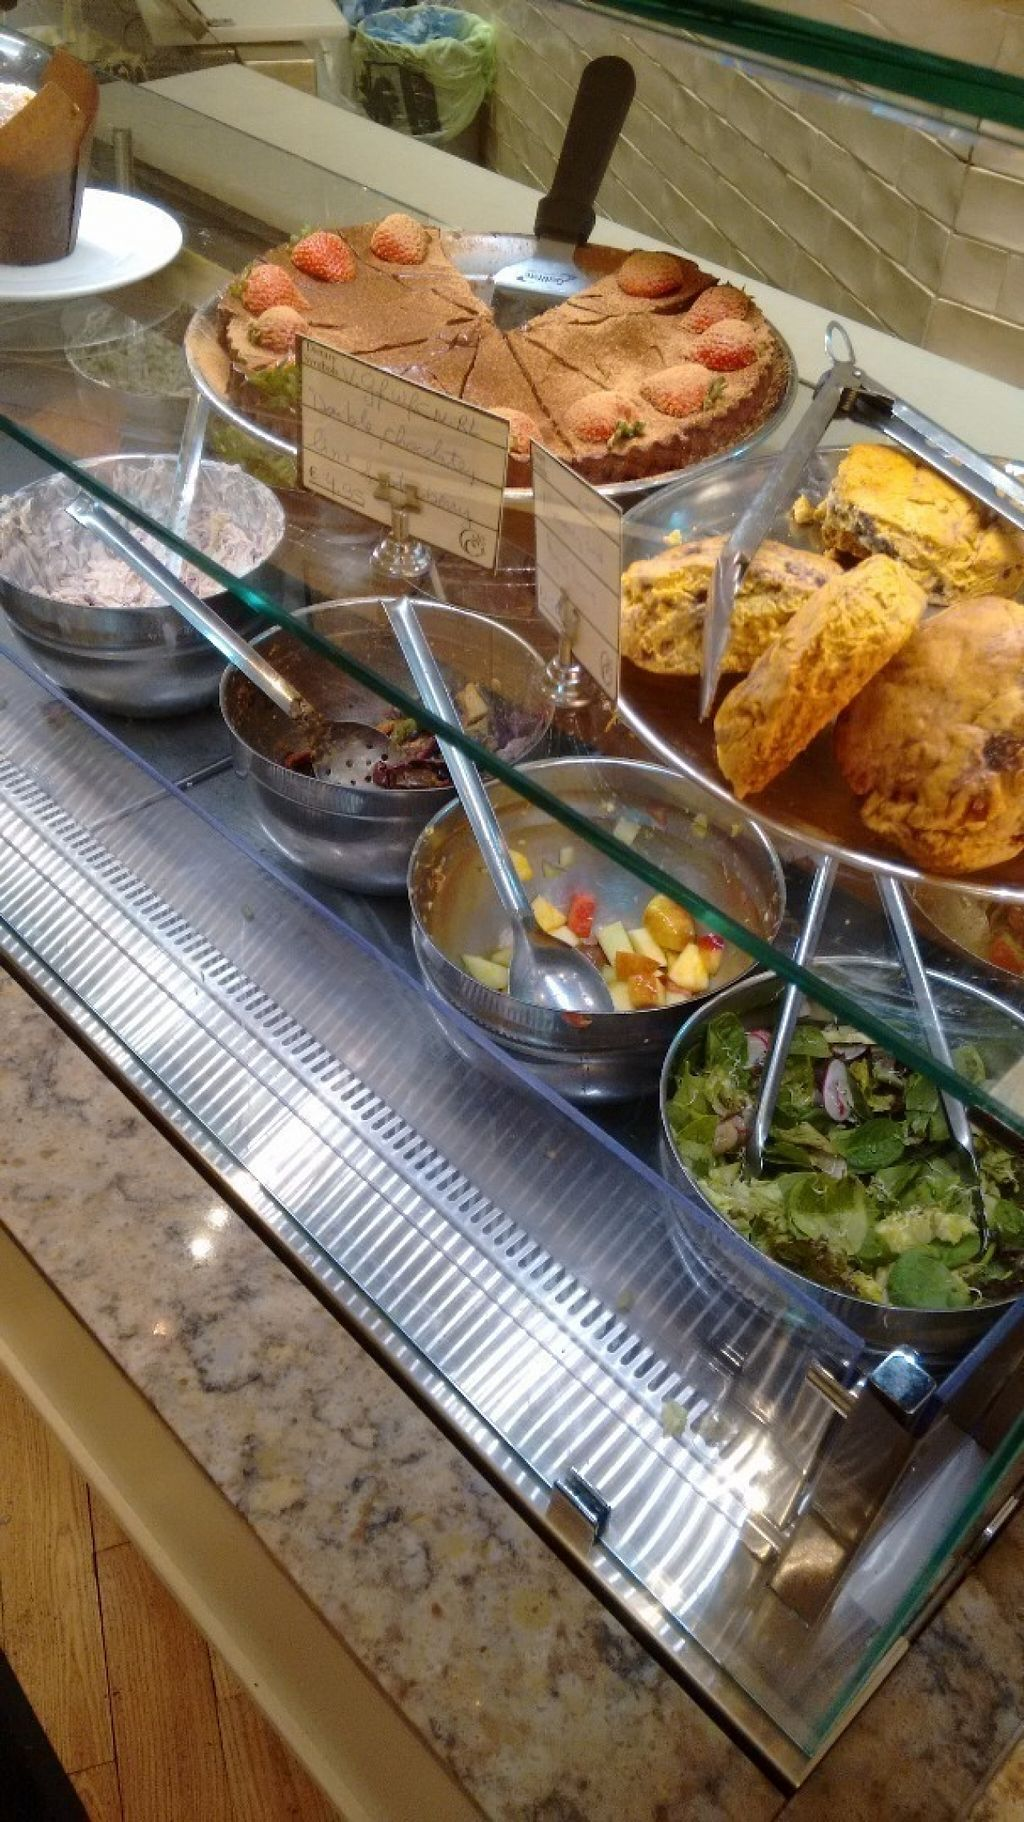 """Photo of Cornucopia Wholefoods  by <a href=""""/members/profile/craigmc"""">craigmc</a> <br/>Salad bar <br/> August 19, 2016  - <a href='/contact/abuse/image/968/169949'>Report</a>"""